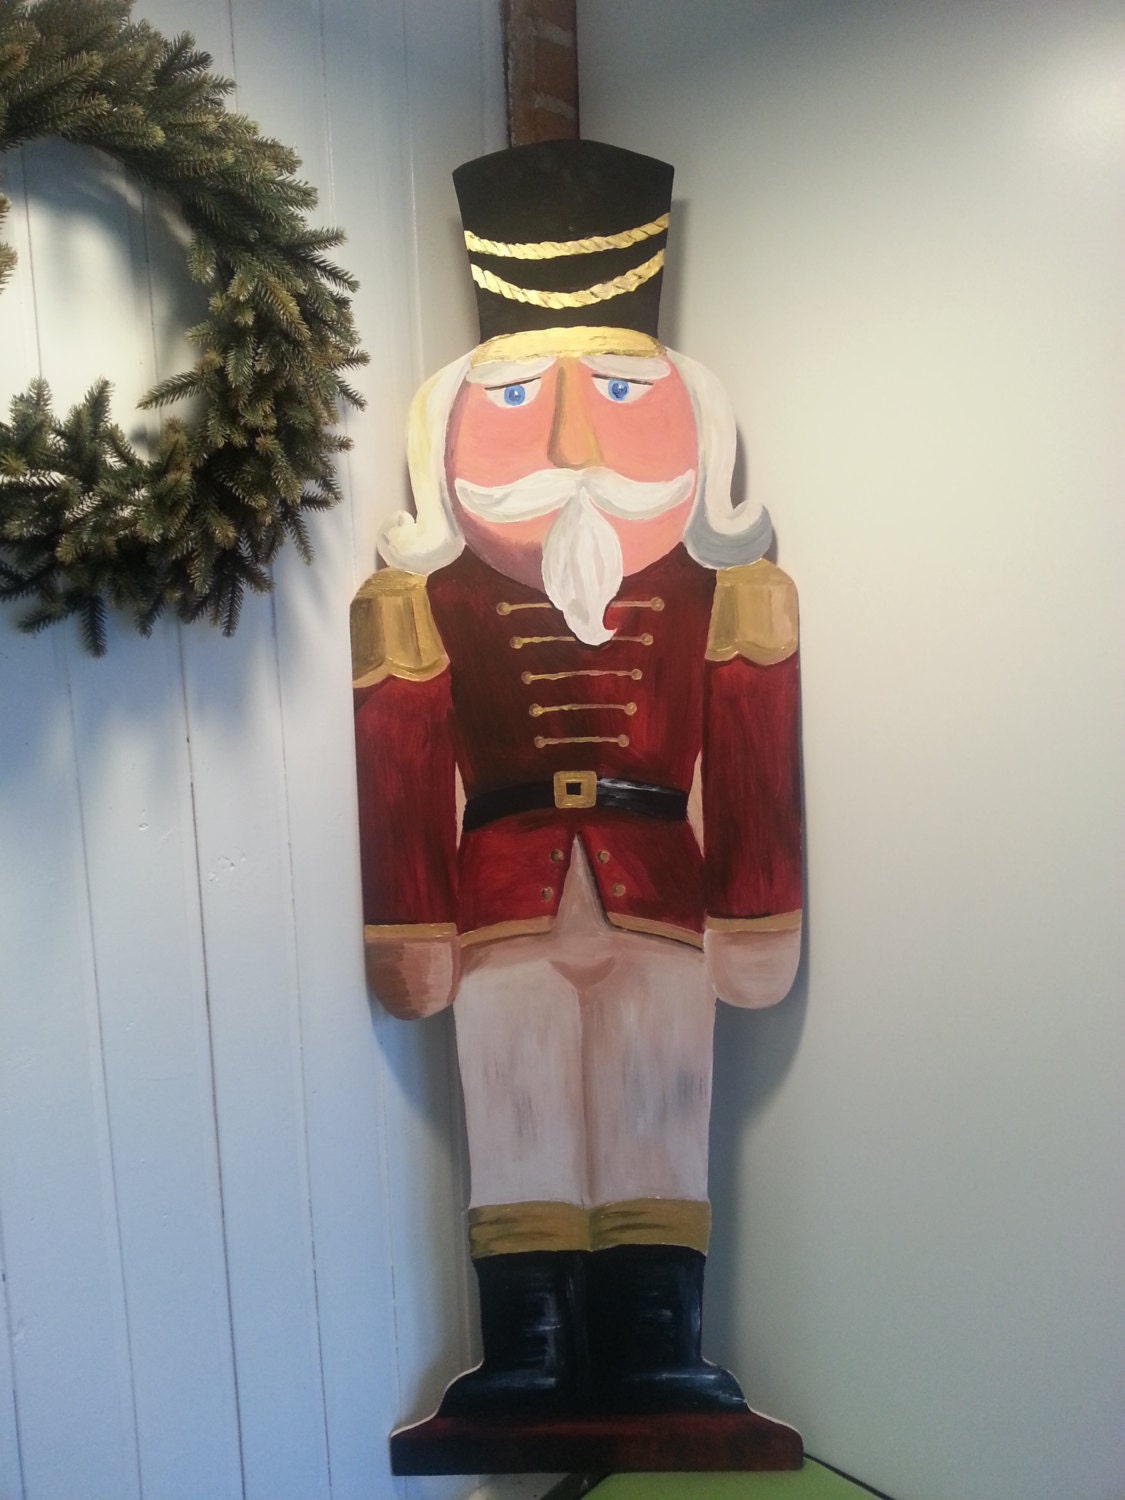 Decorationslifesize toy soldiers and nutcracker christmas decorations - Filename Il_fullxfull 527809894_iuci Jpg